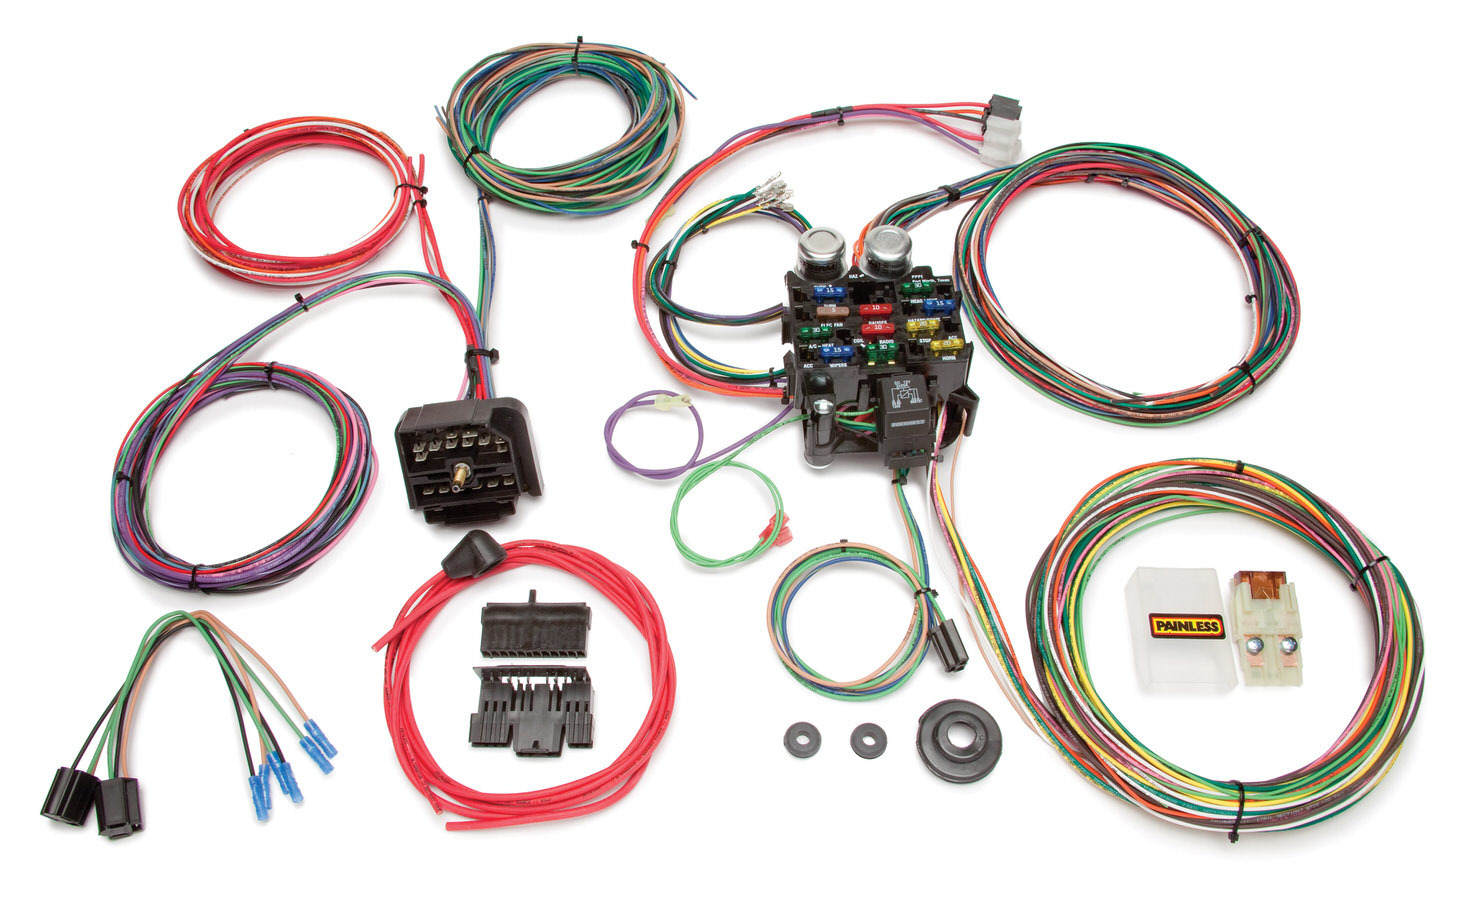 Painless Wiring 10106 Car Wiring Harness, Classic Customizable, Complete, 22 Circuit, Complete, Jeep CJ 1976-86, Kit